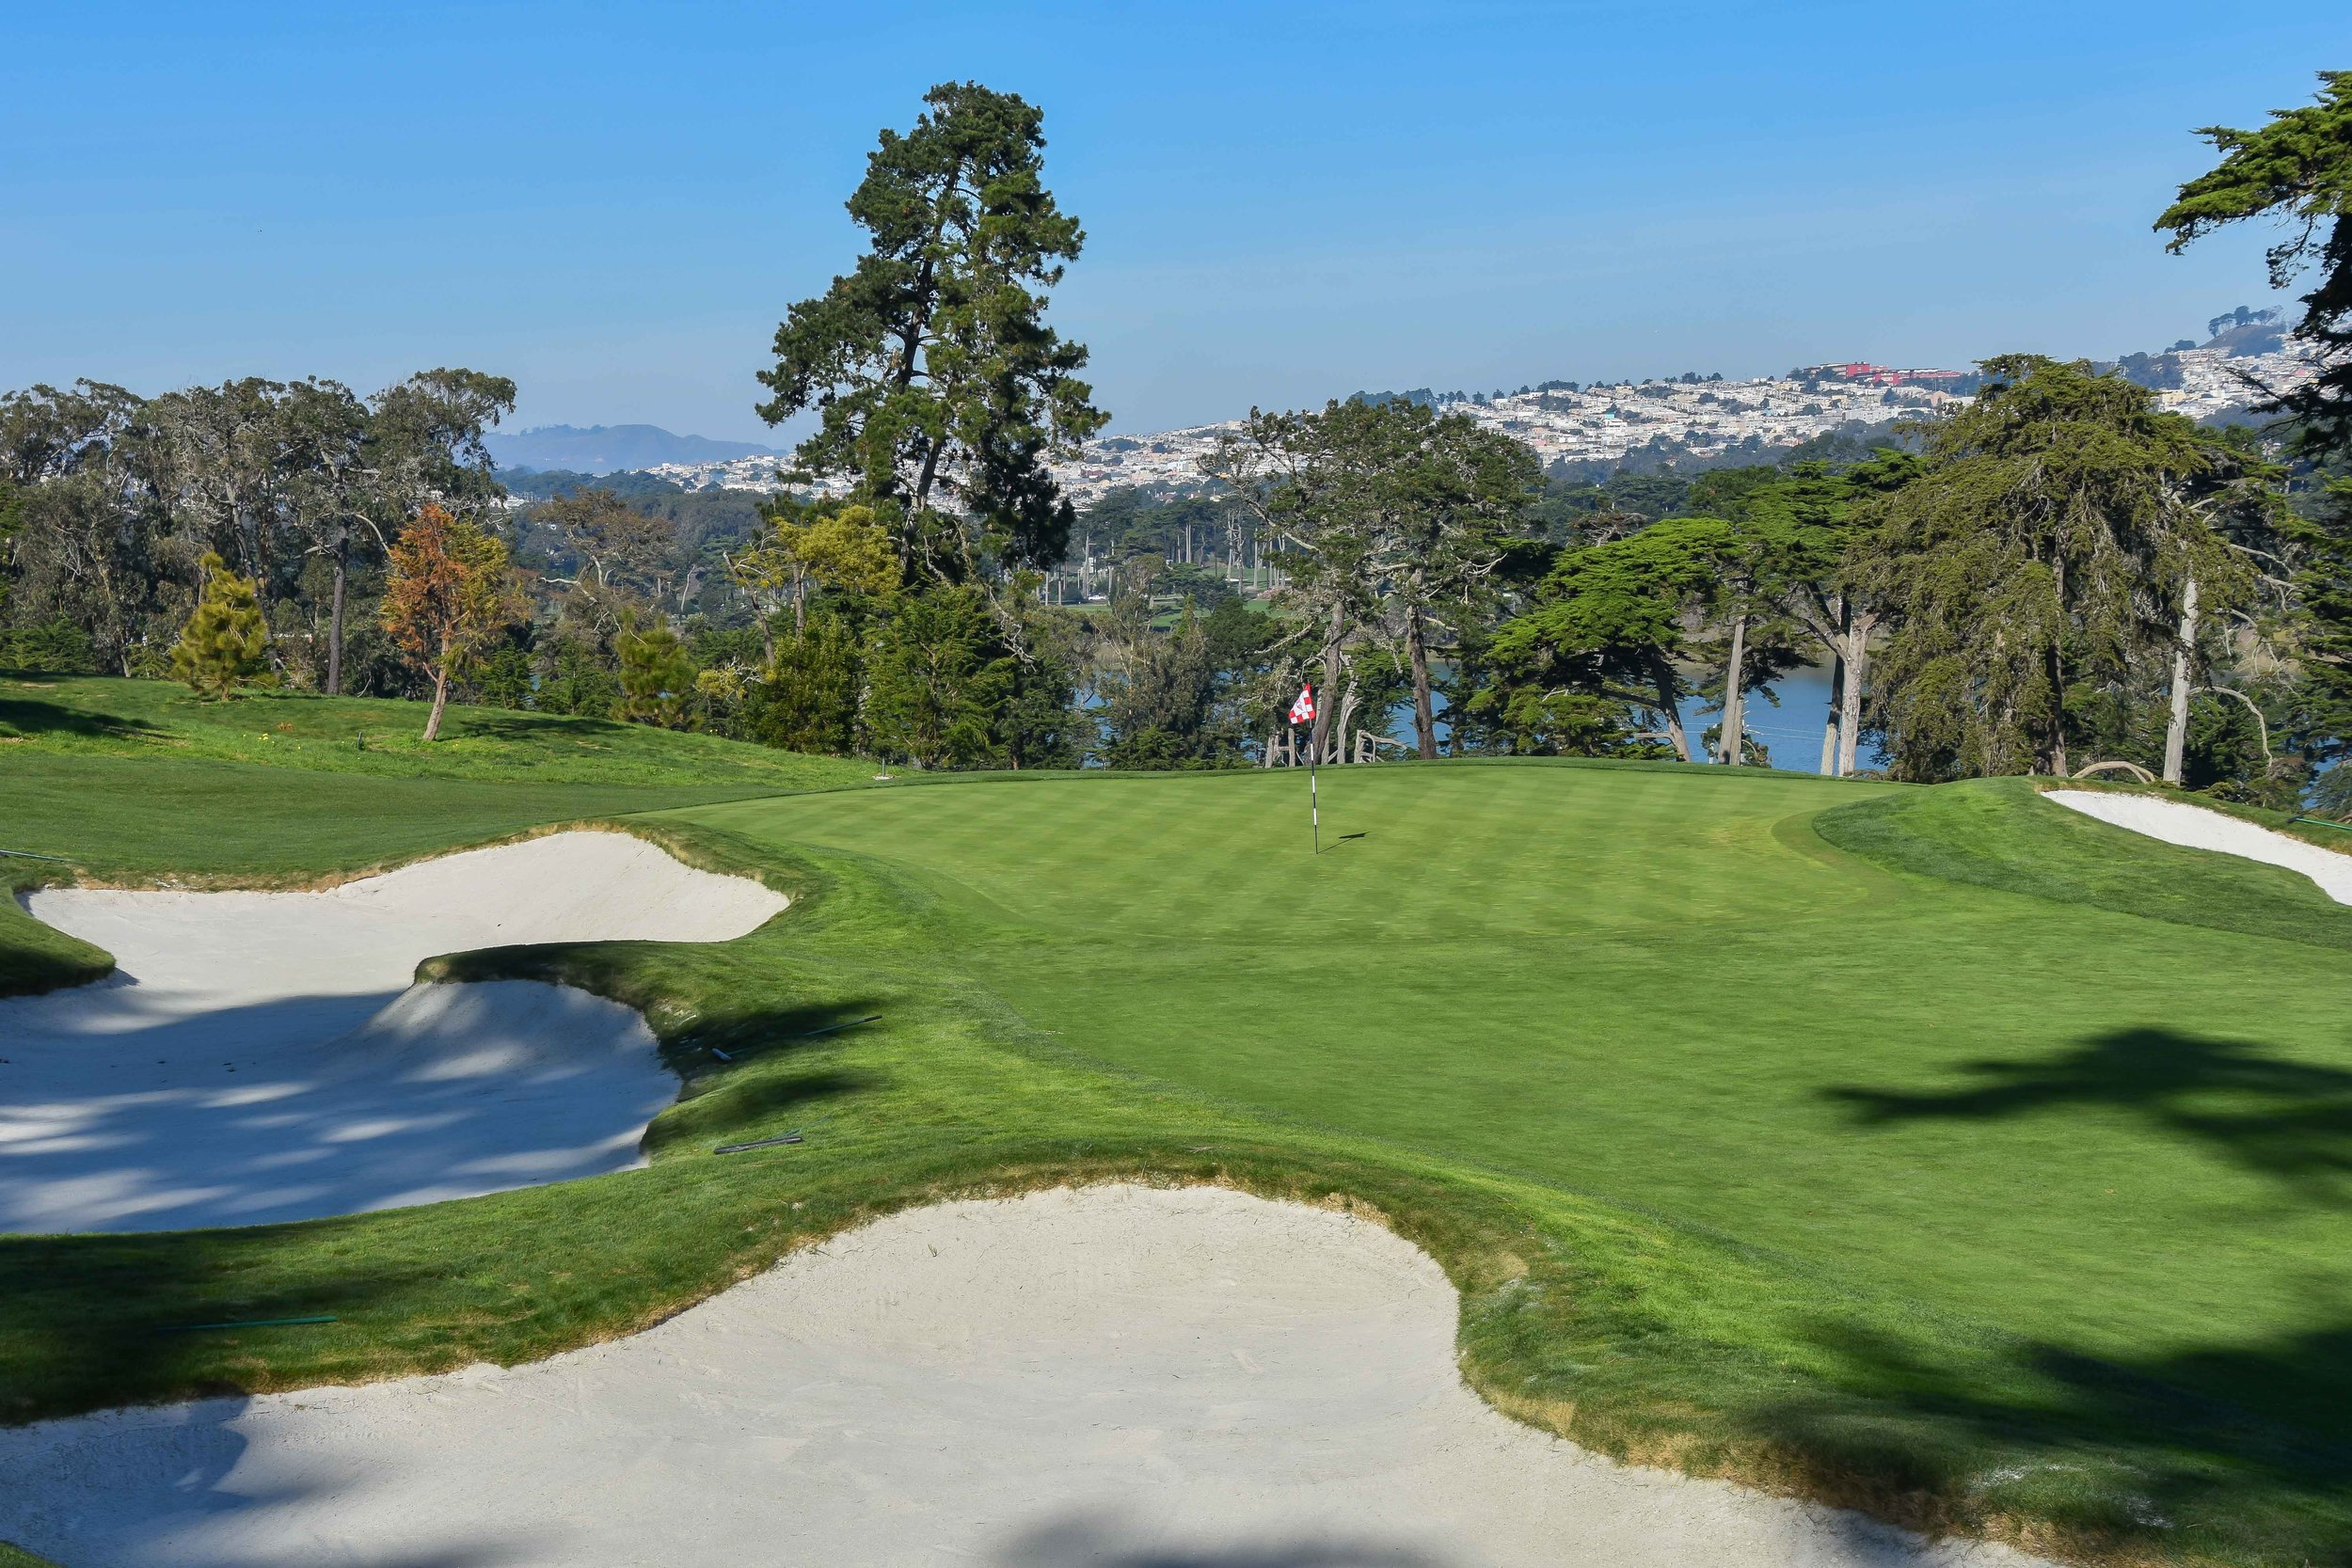 The long par 3 3rd hole at Olympic Club